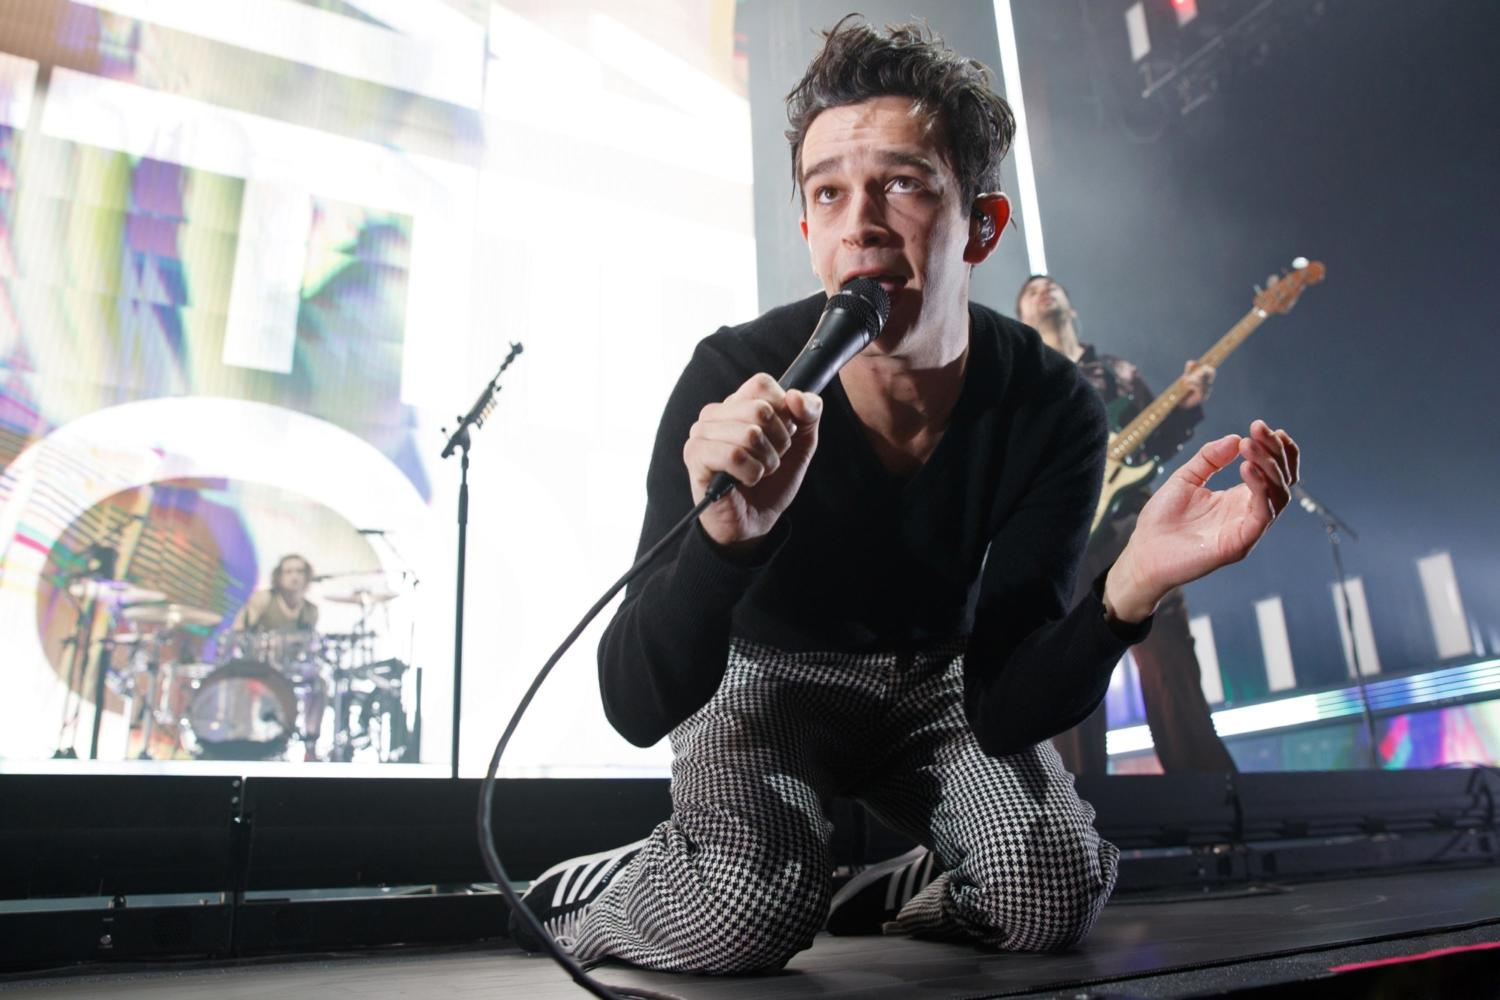 The 1975 confirmed as surprise headliner for Pitchfork Festival Paris